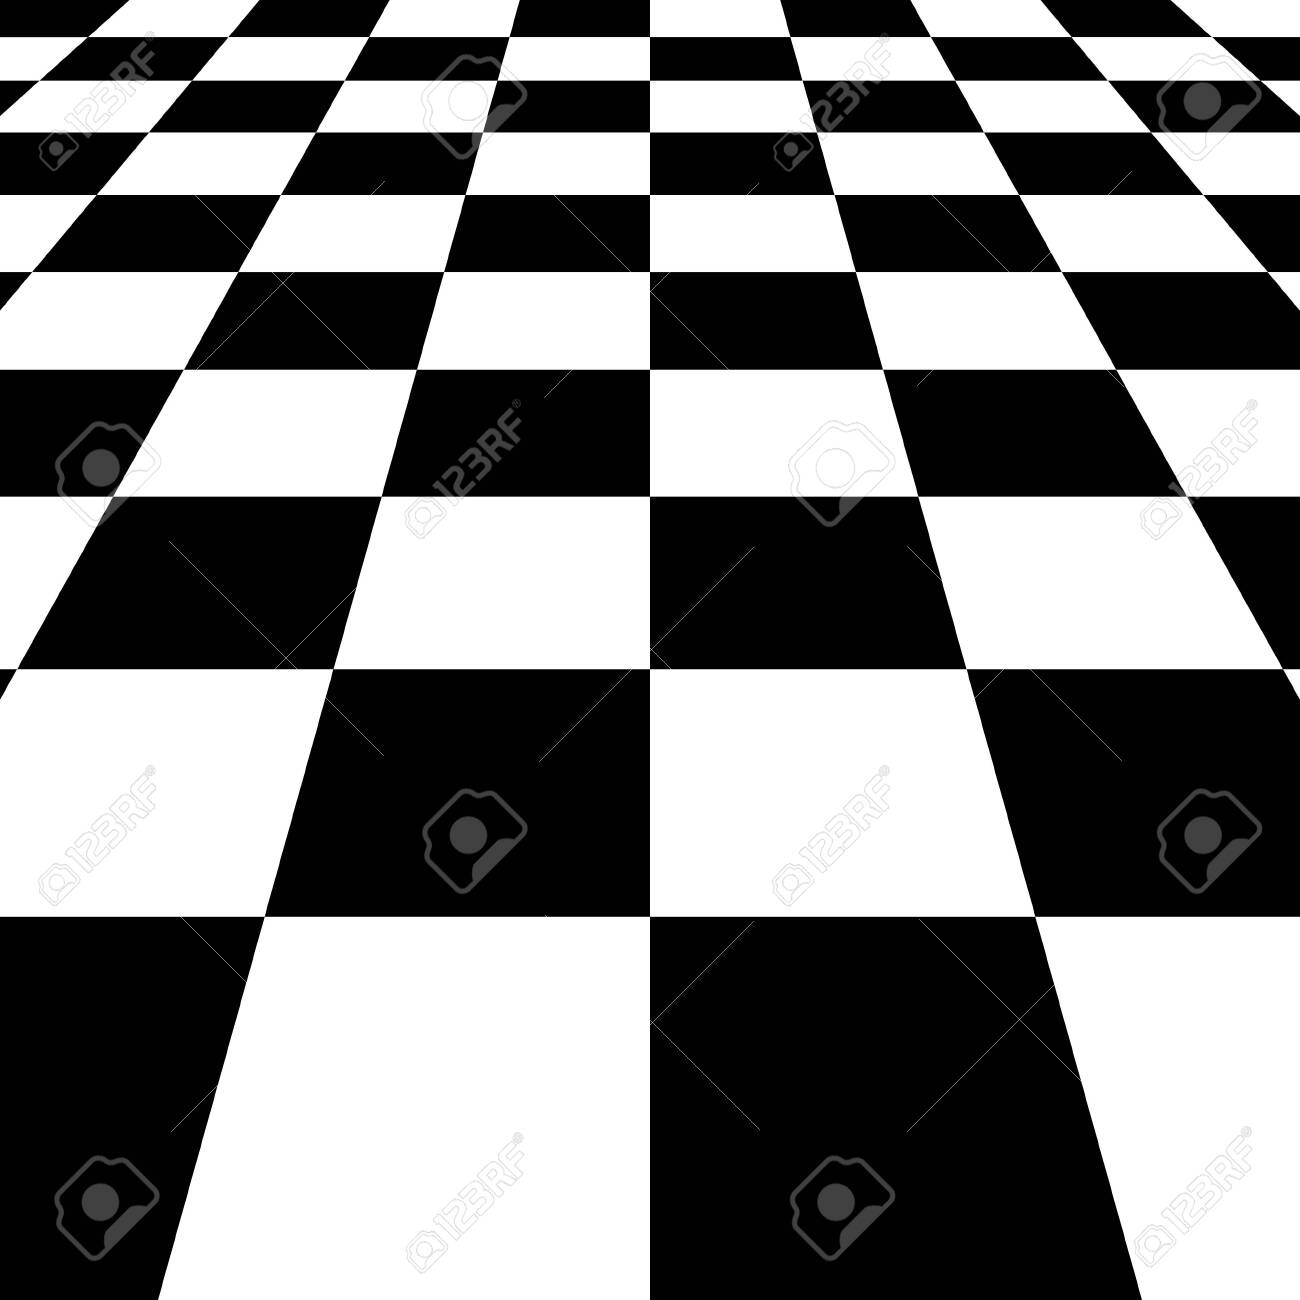 Black white squares checkered Board background, vector chessboard perspective - 140641047